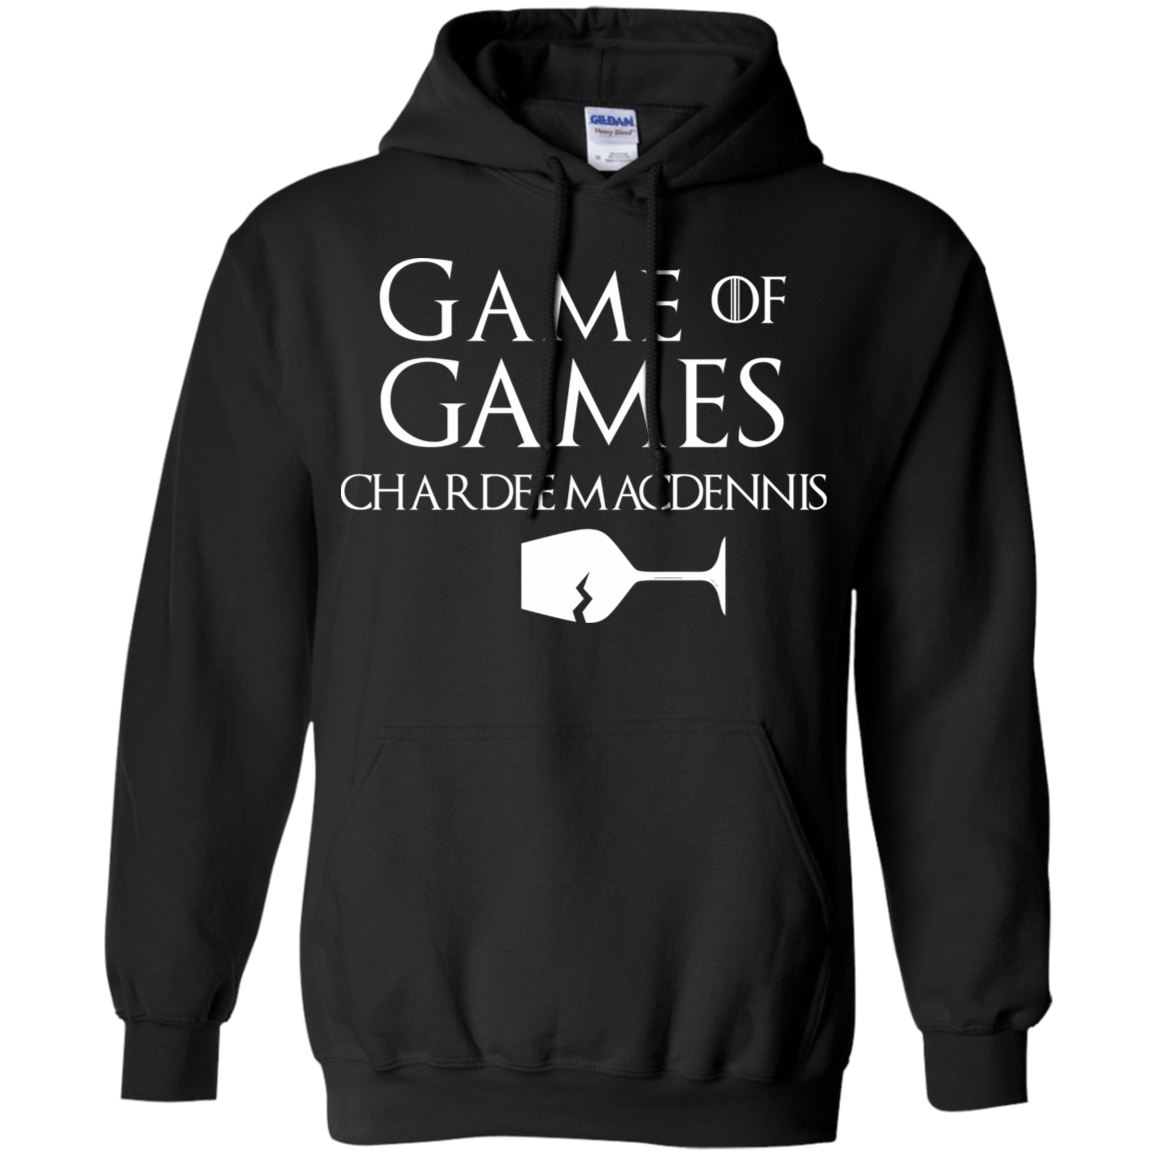 Game Of Games Chardee Macdennis 541-4740-72957244-23087 - Tee Ript